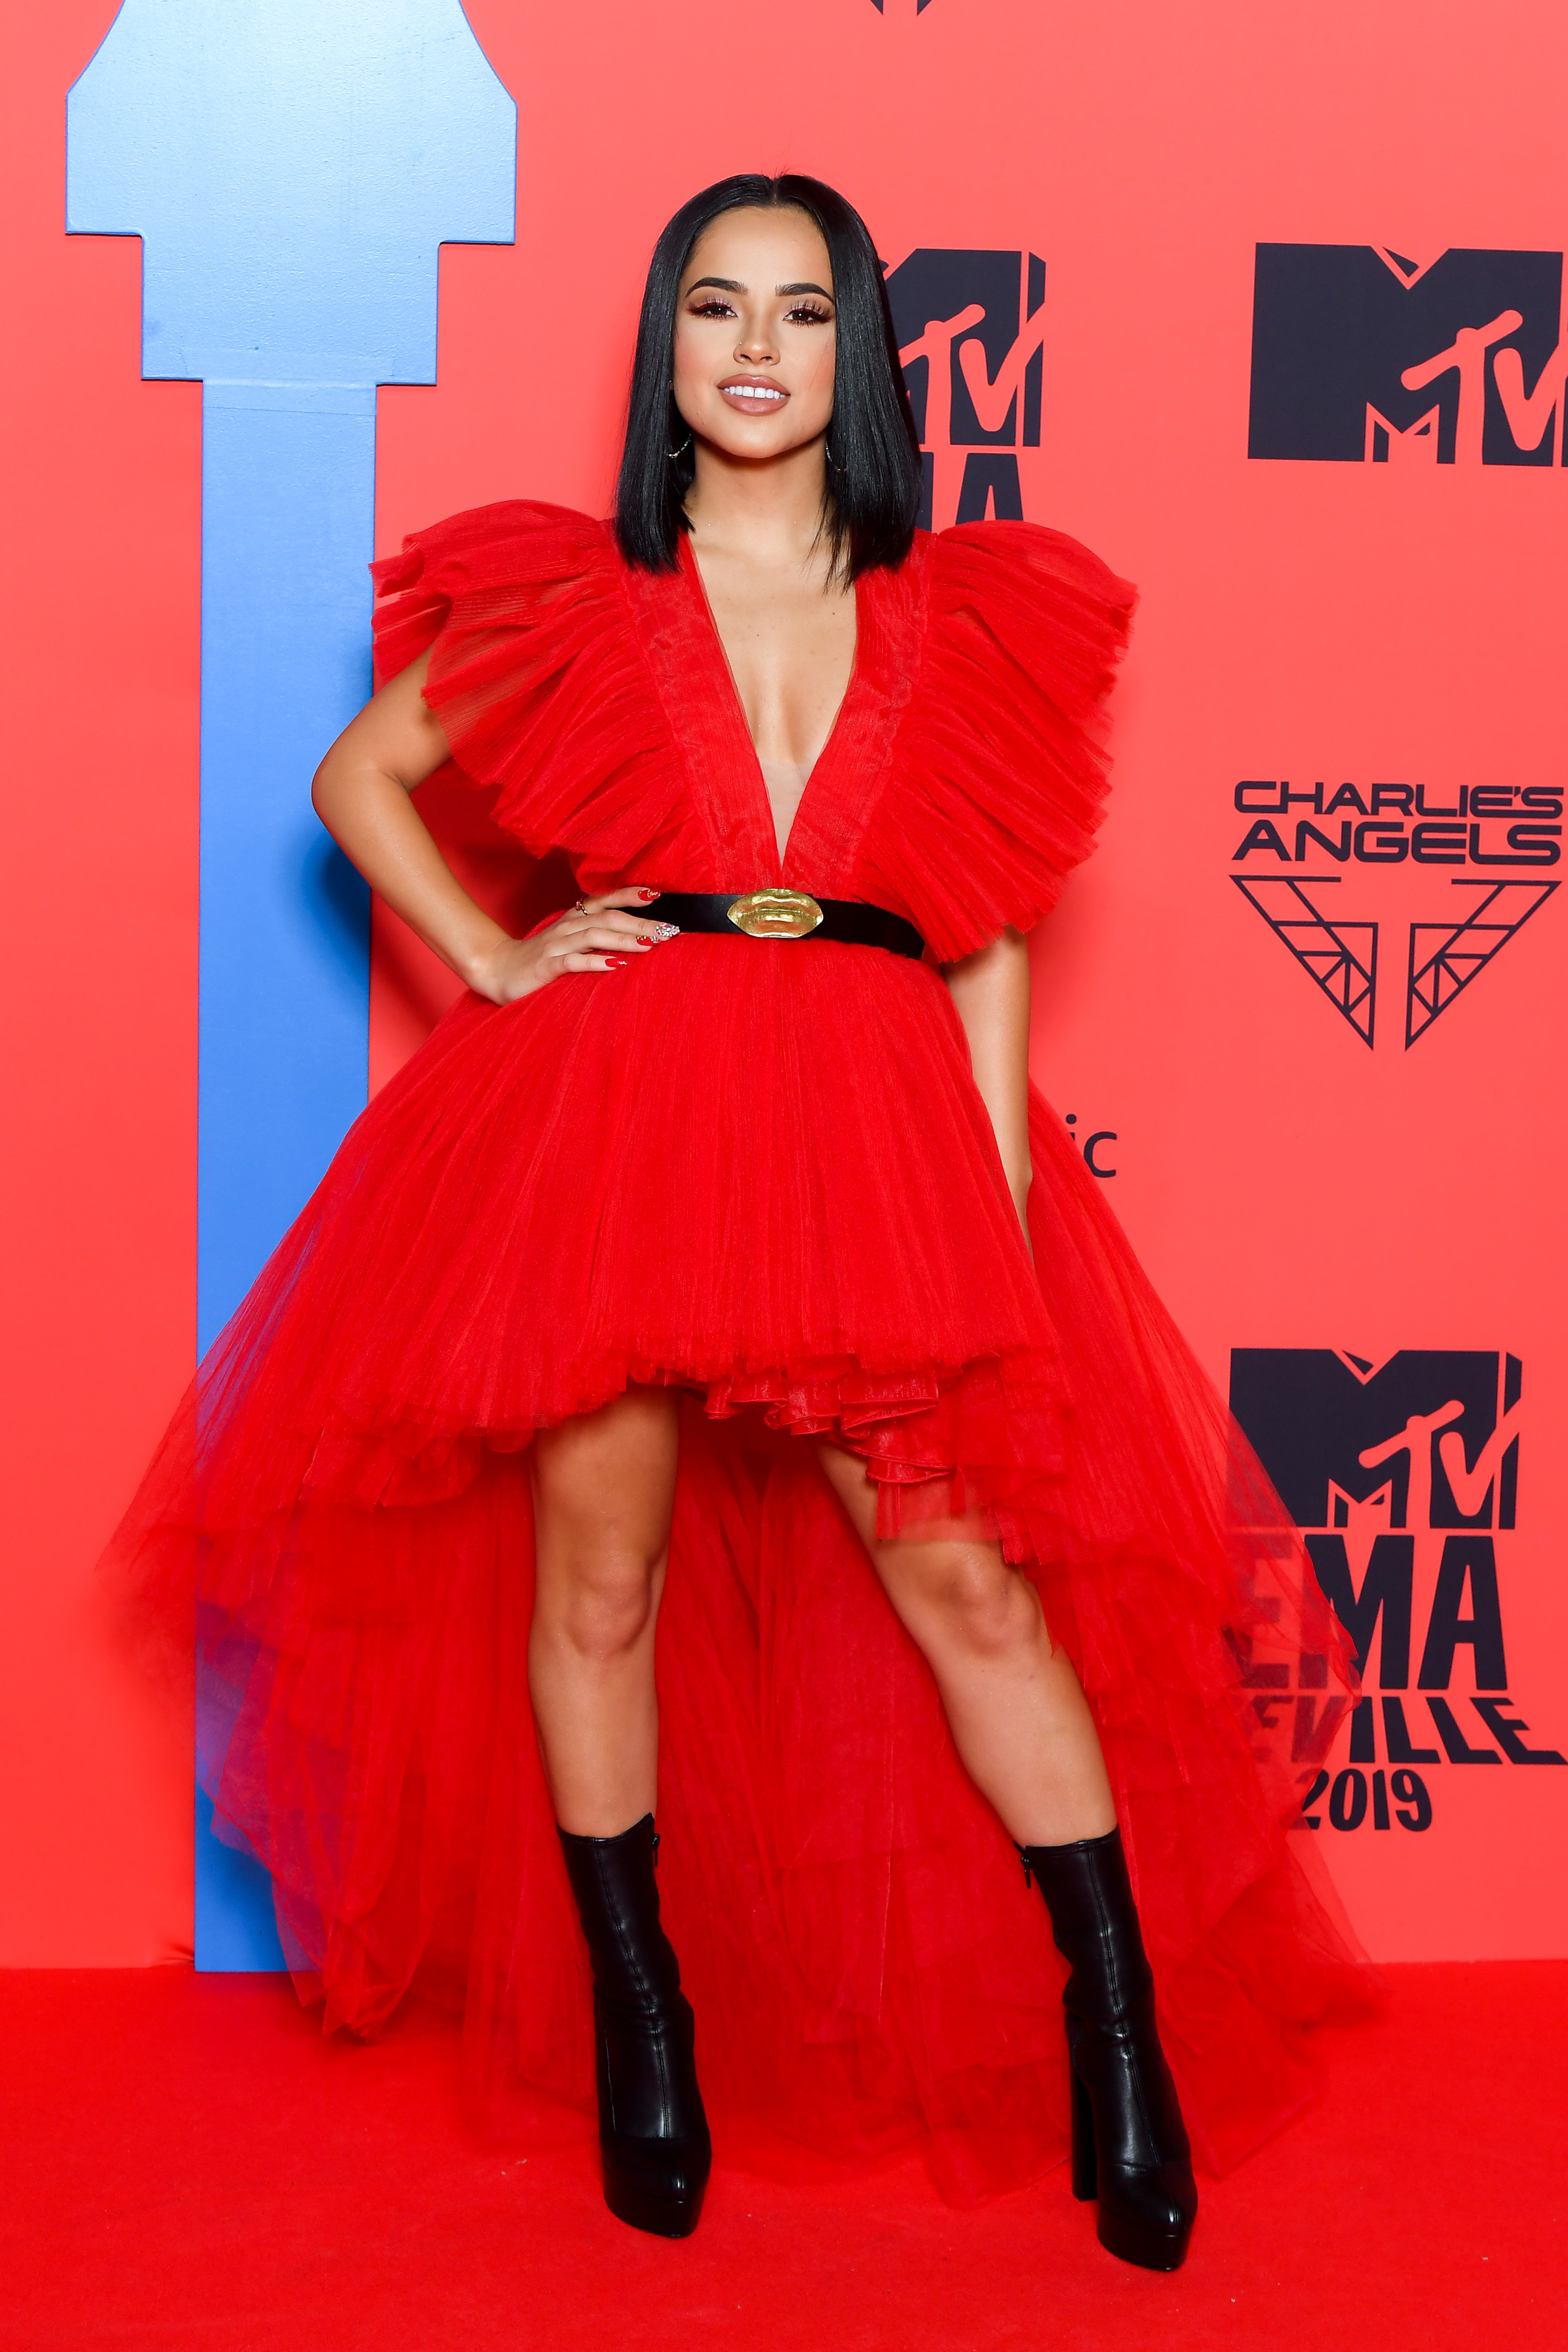 MTV EMAs 2019 - Red Carpet Arrivals